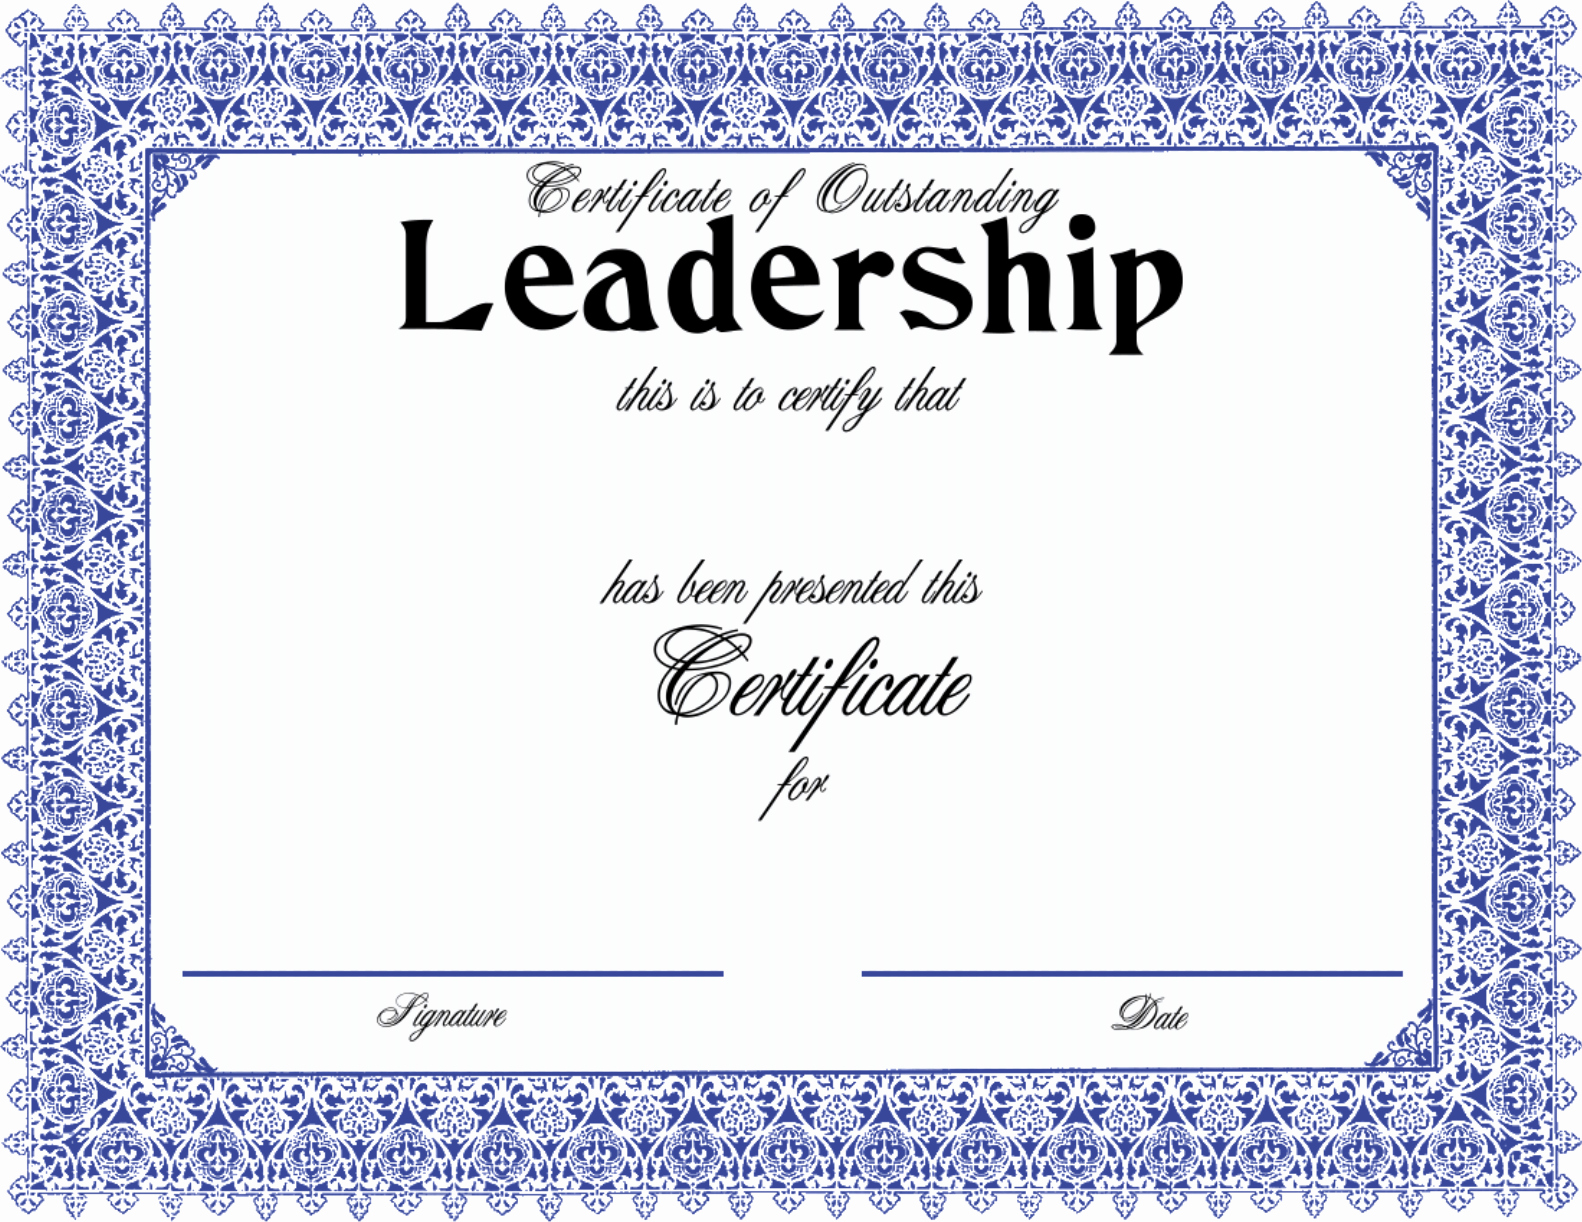 Honorable Discharge Certificate Template New Download Certificate Outstanding Leadership with A